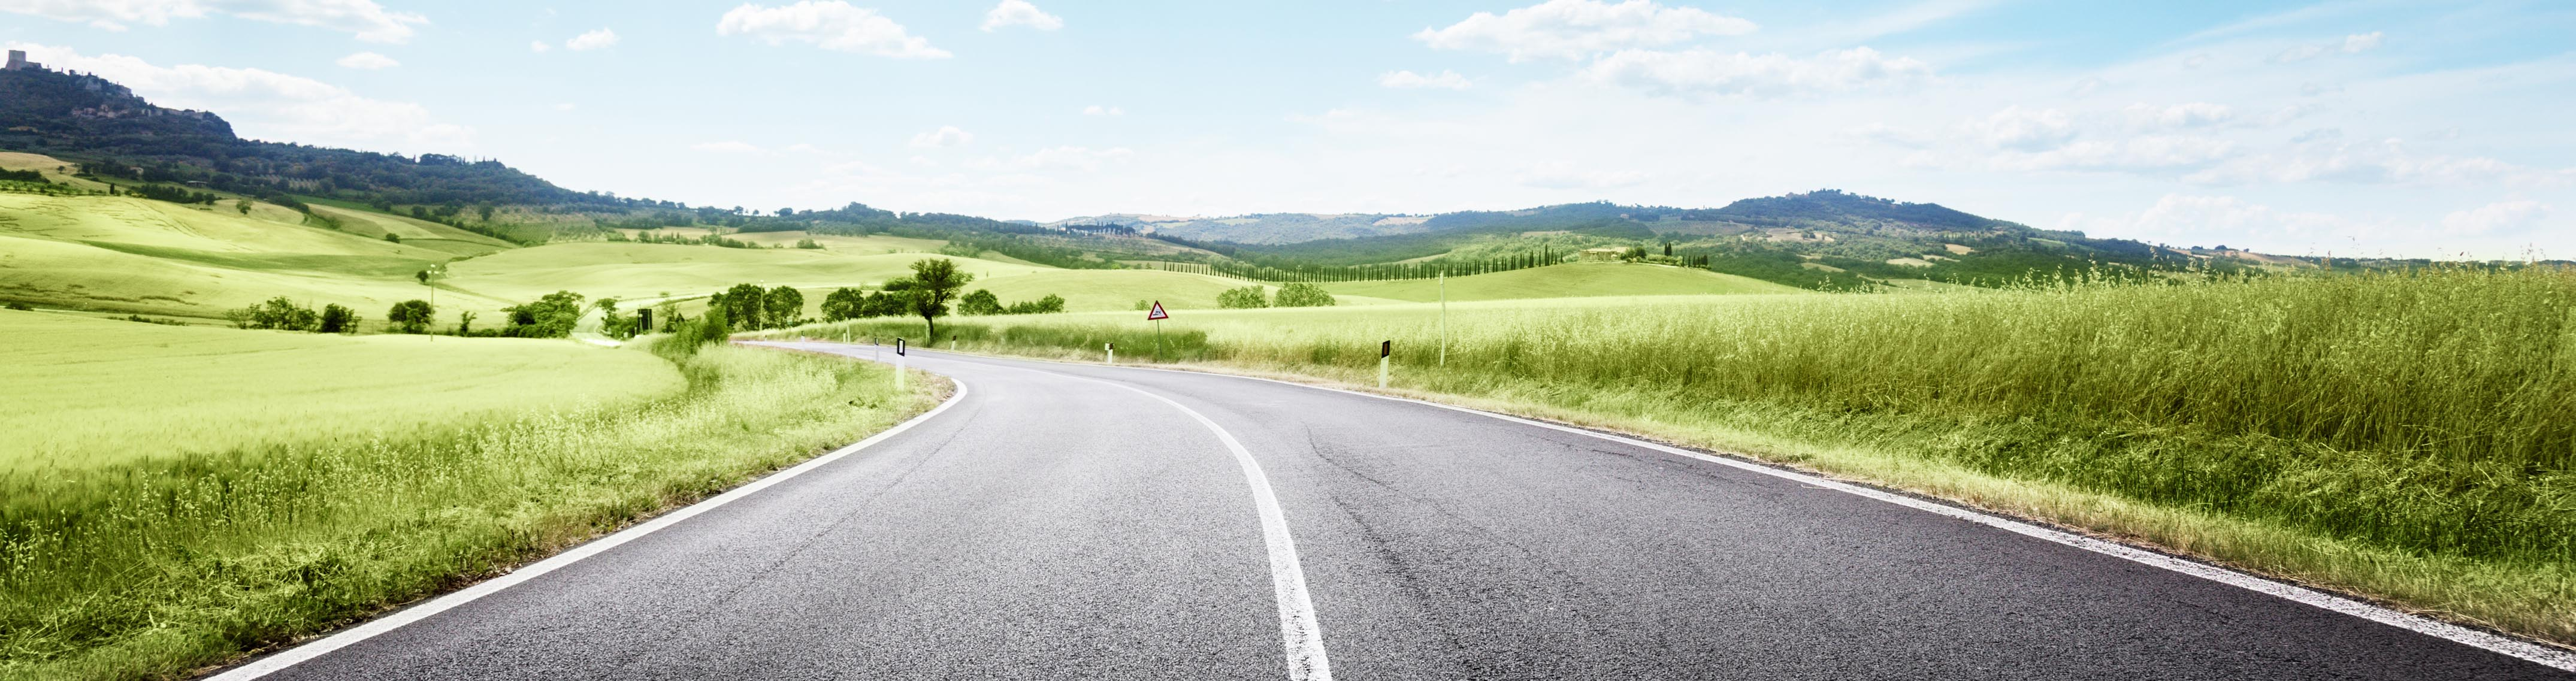 Landscape with open road